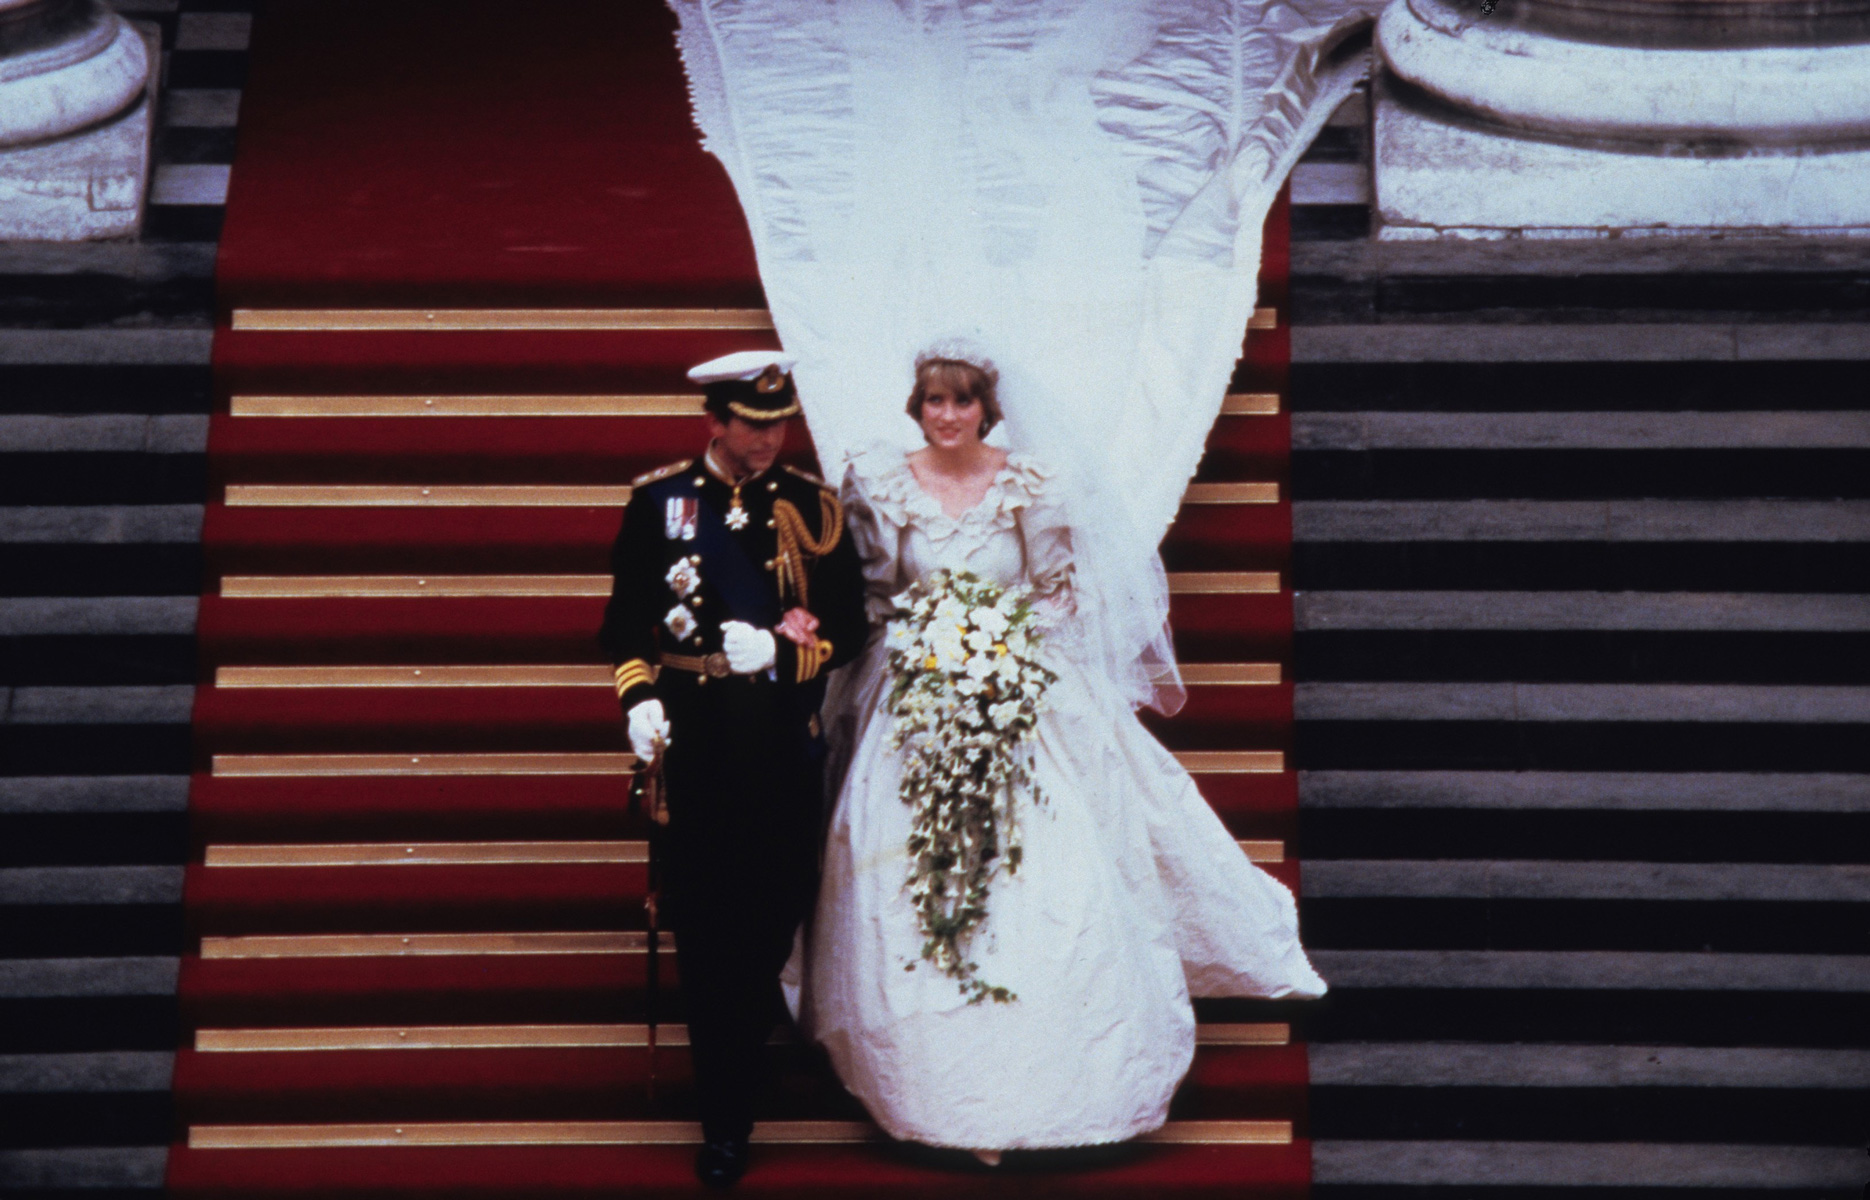 Princess Diana Walks Down Aisle In Bridal Gown By David